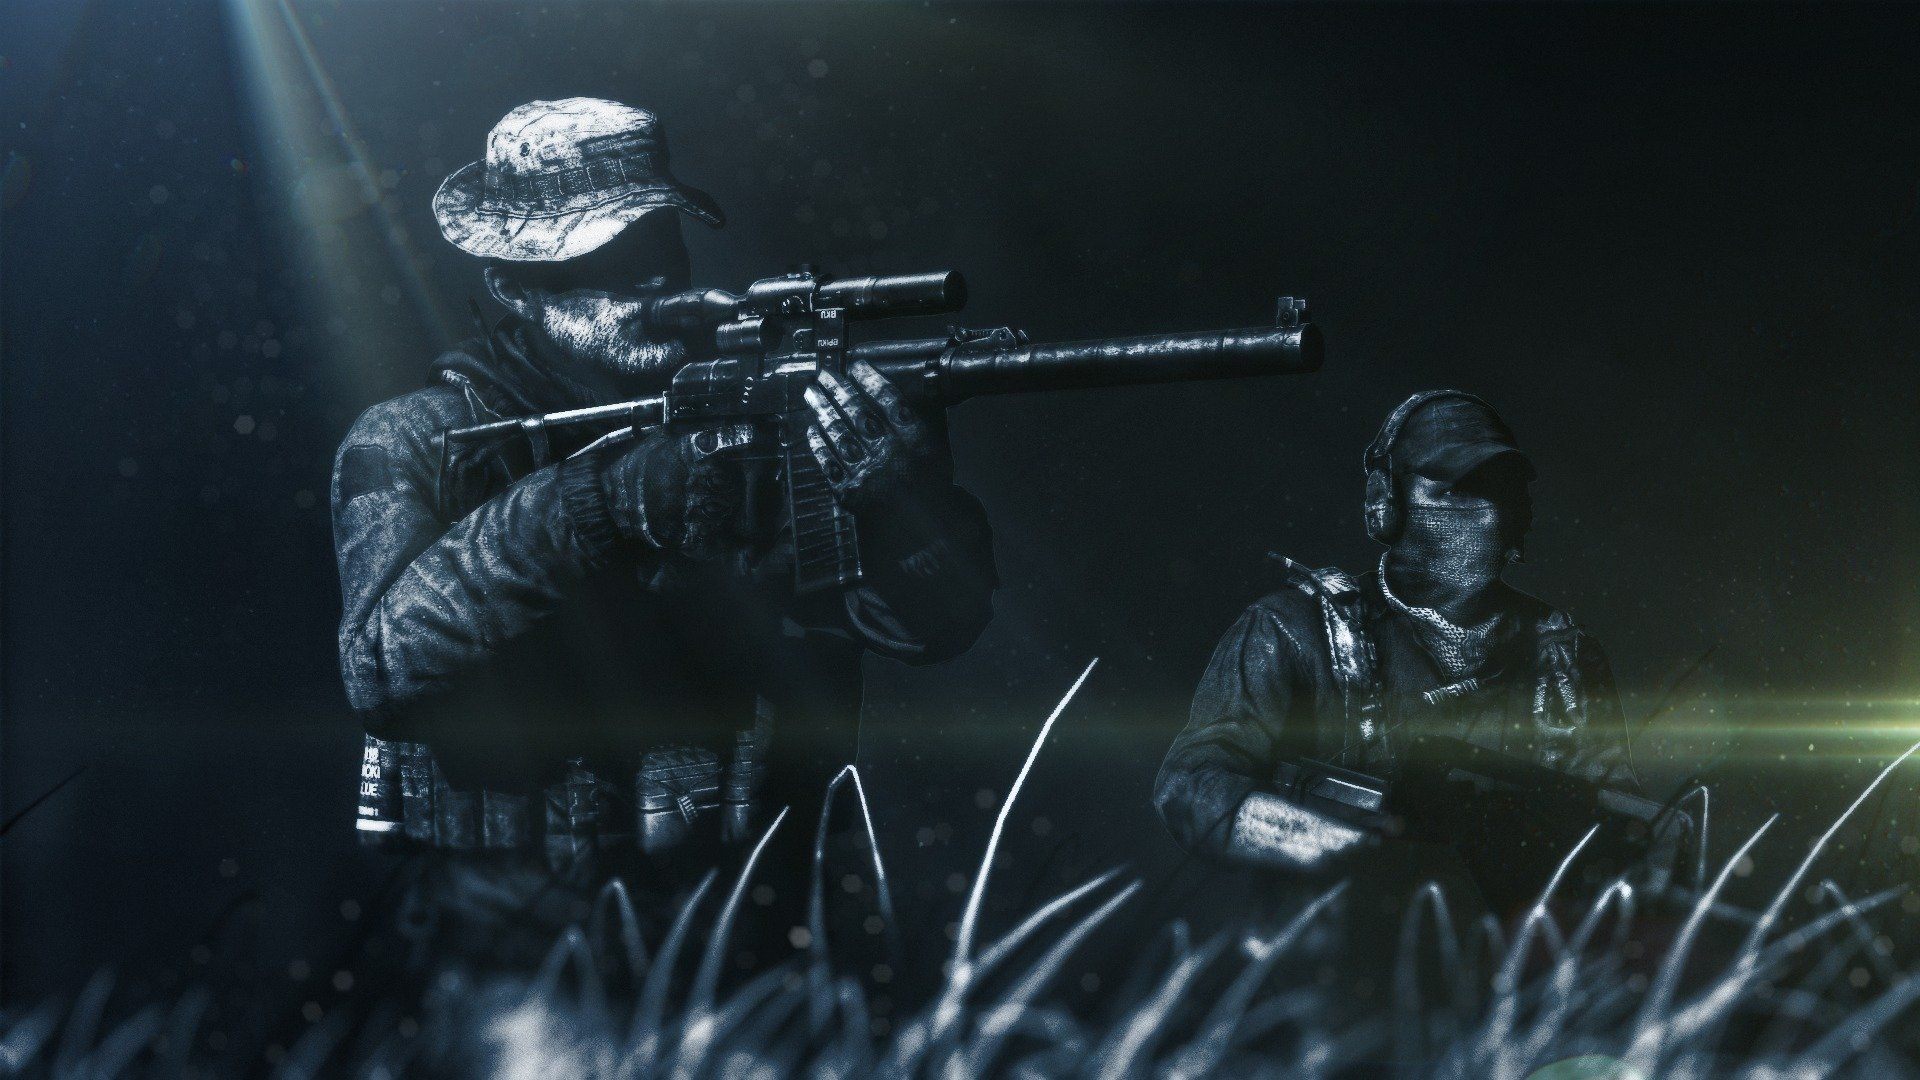 Call Of Duty Cod Captain Price Sas Hd Wallpaper Call Of Duty